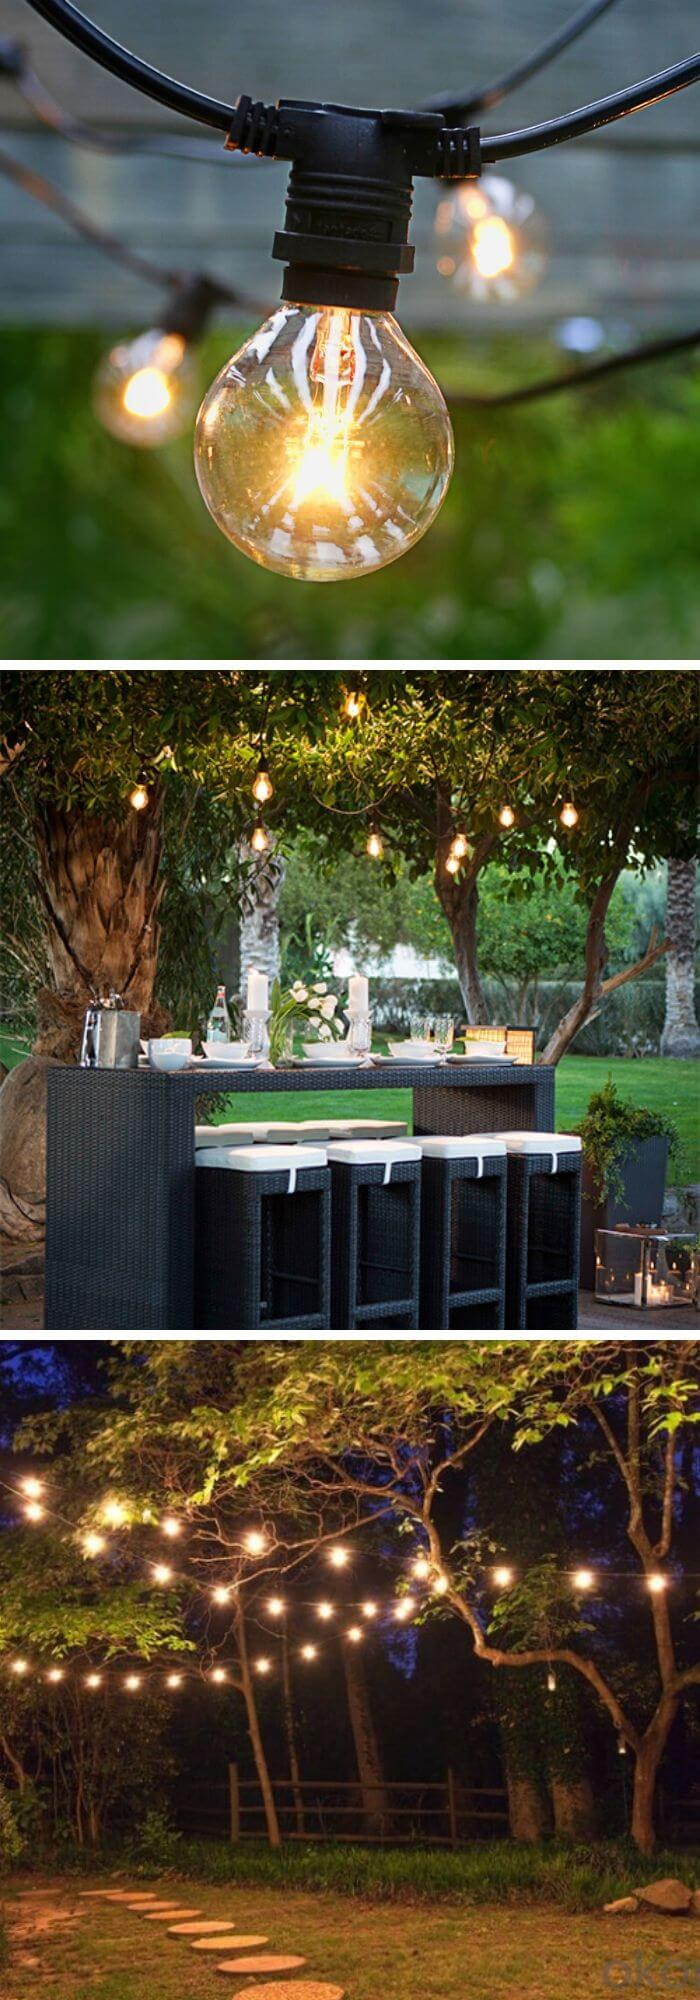 A Backyard with Excellent Mood Lighting